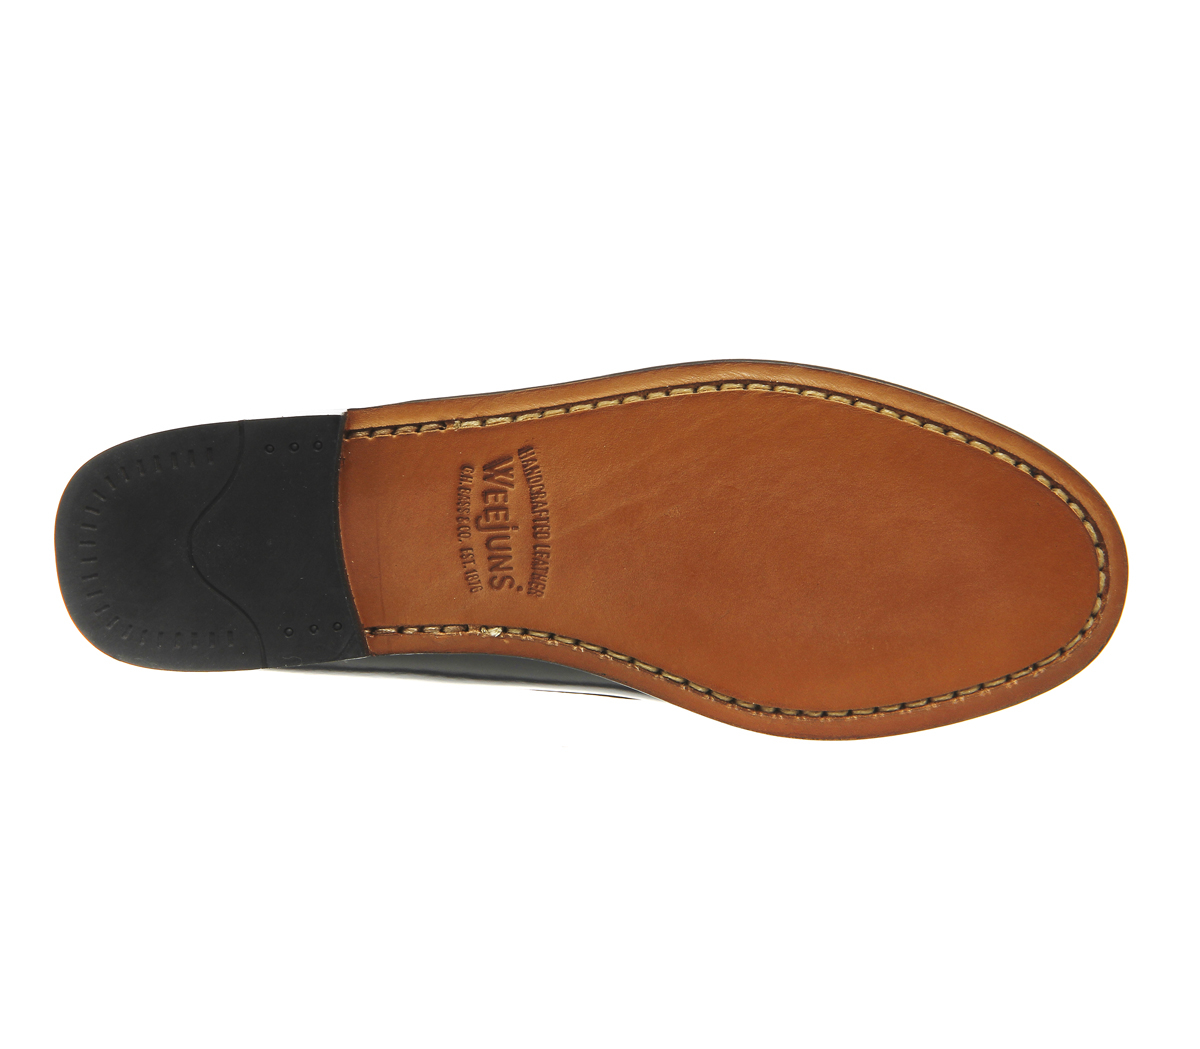 Clarks Shoes Penny Loafer All Black